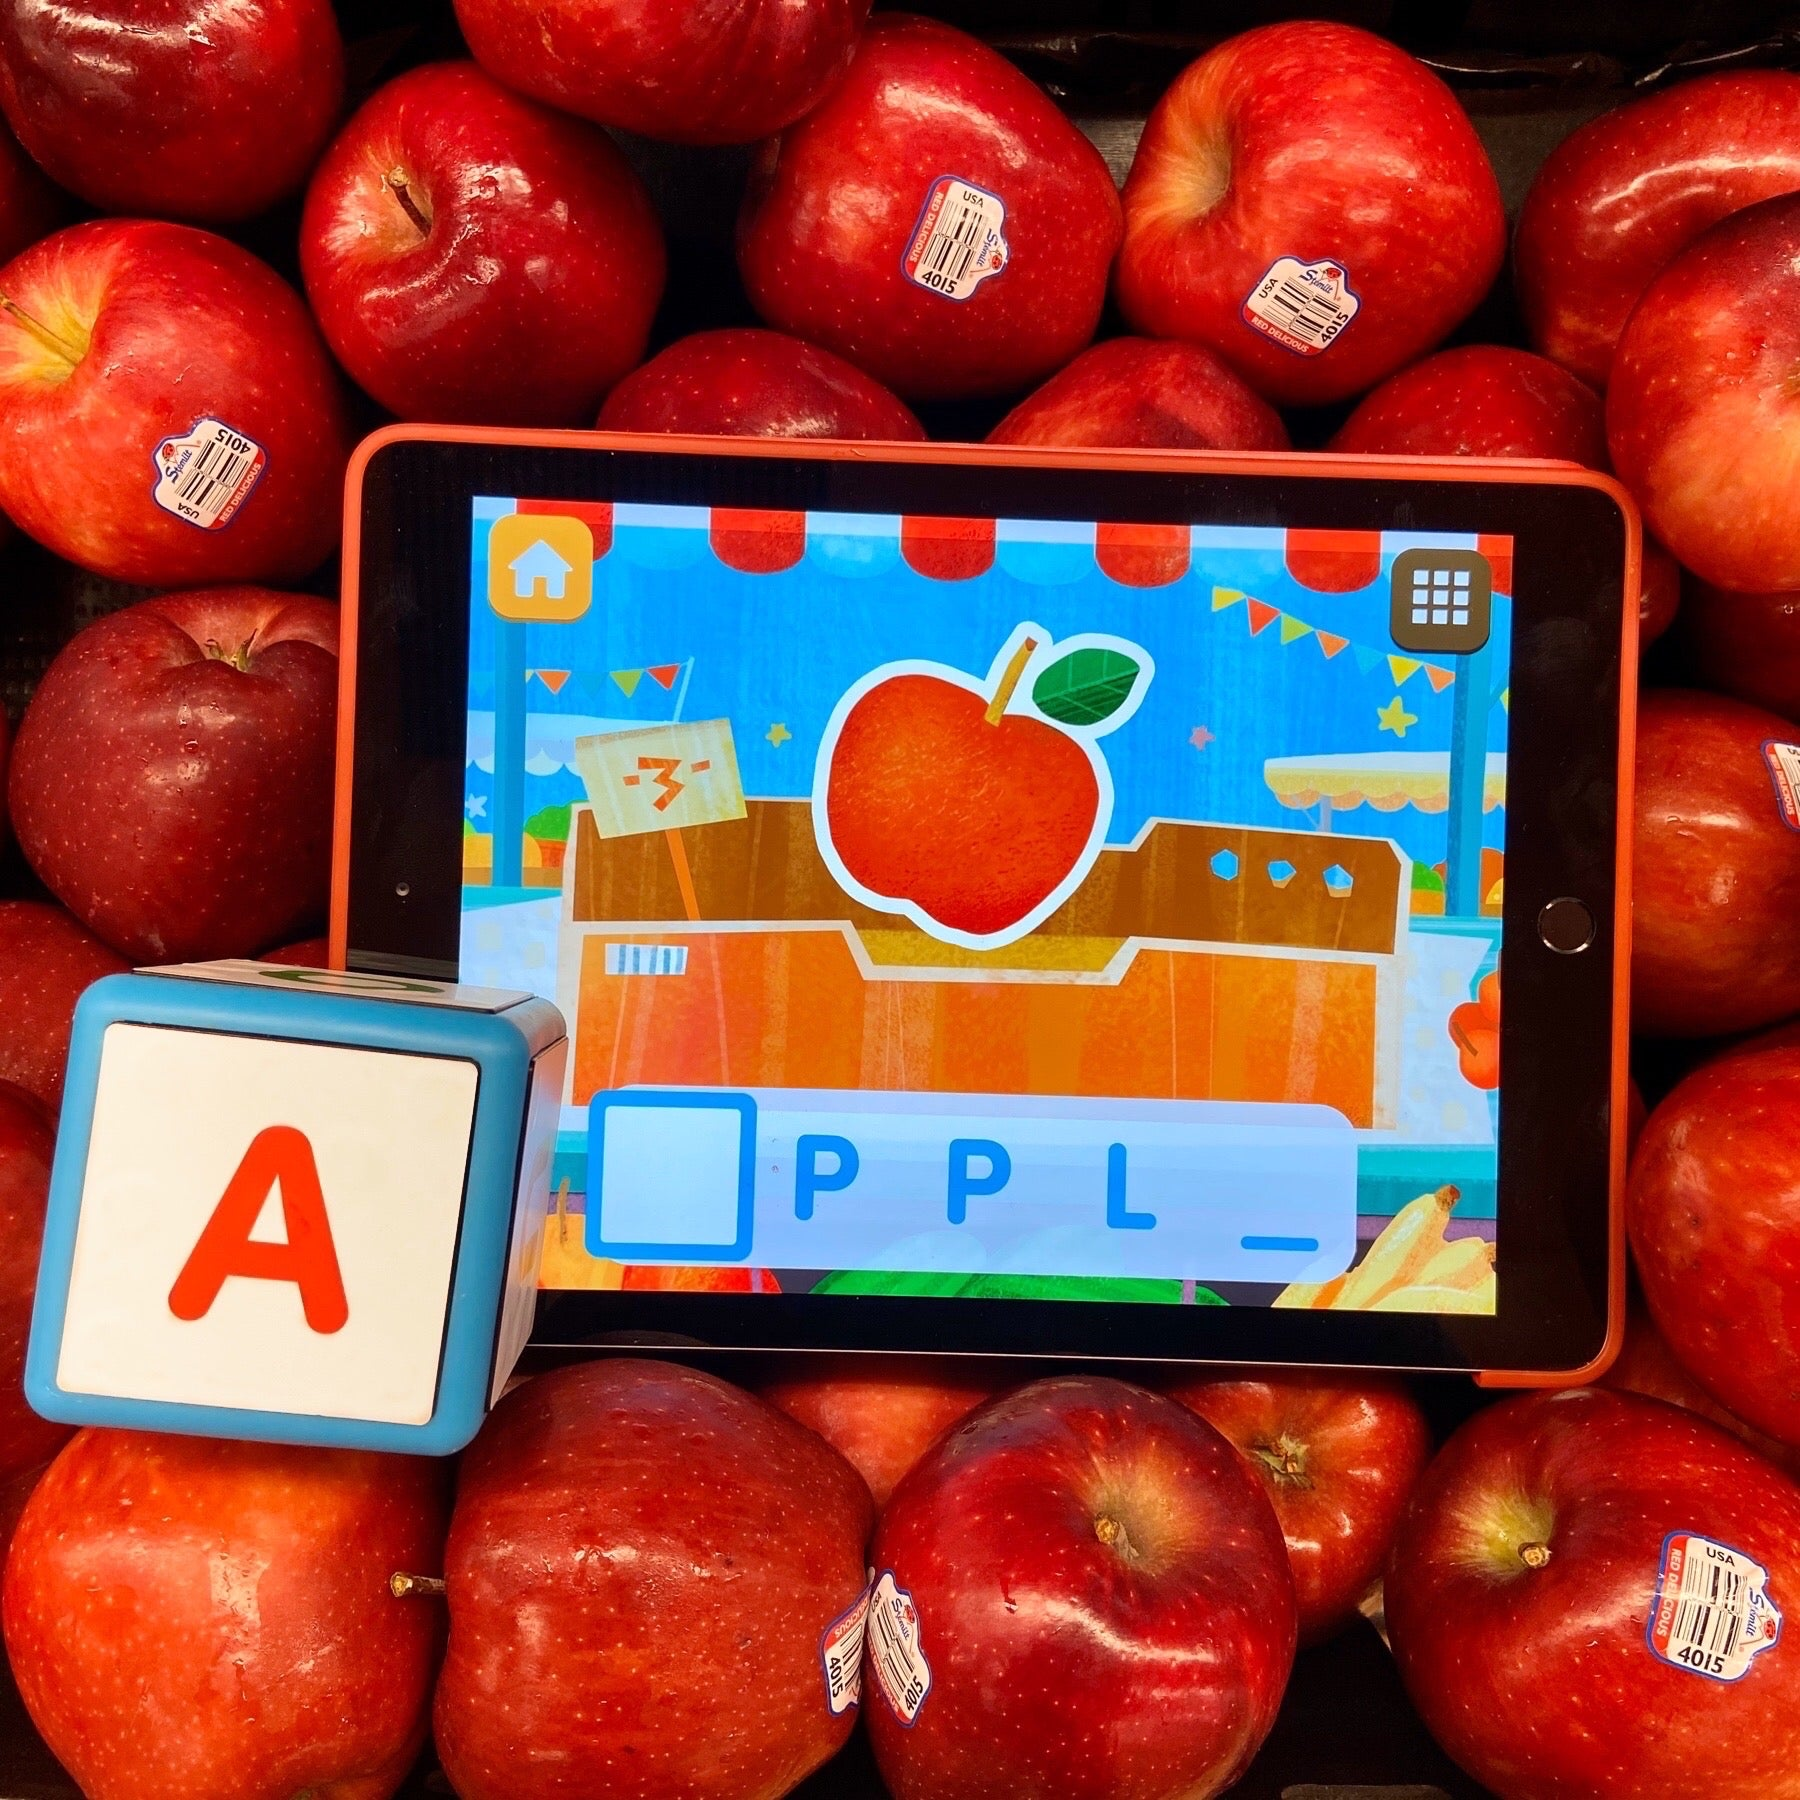 Cookie Kiddle cube and iPad with real apples